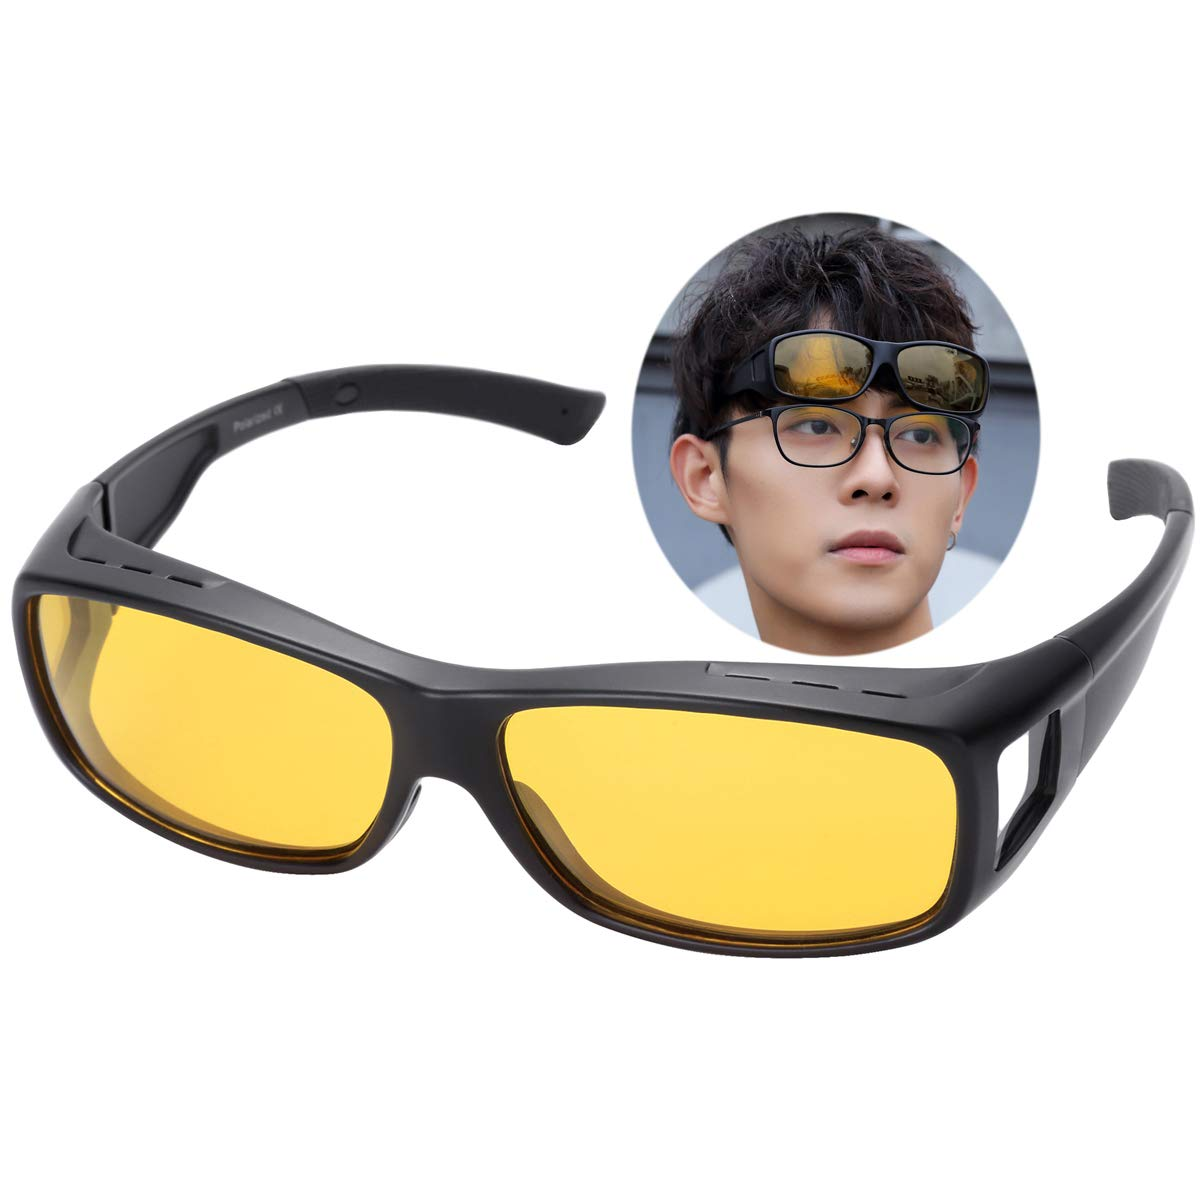 O-LET Night Vision Fit Over Glasses Sunglasses Yellow for Men Women Driving Polarized (black frame/yellow lens, Medium)